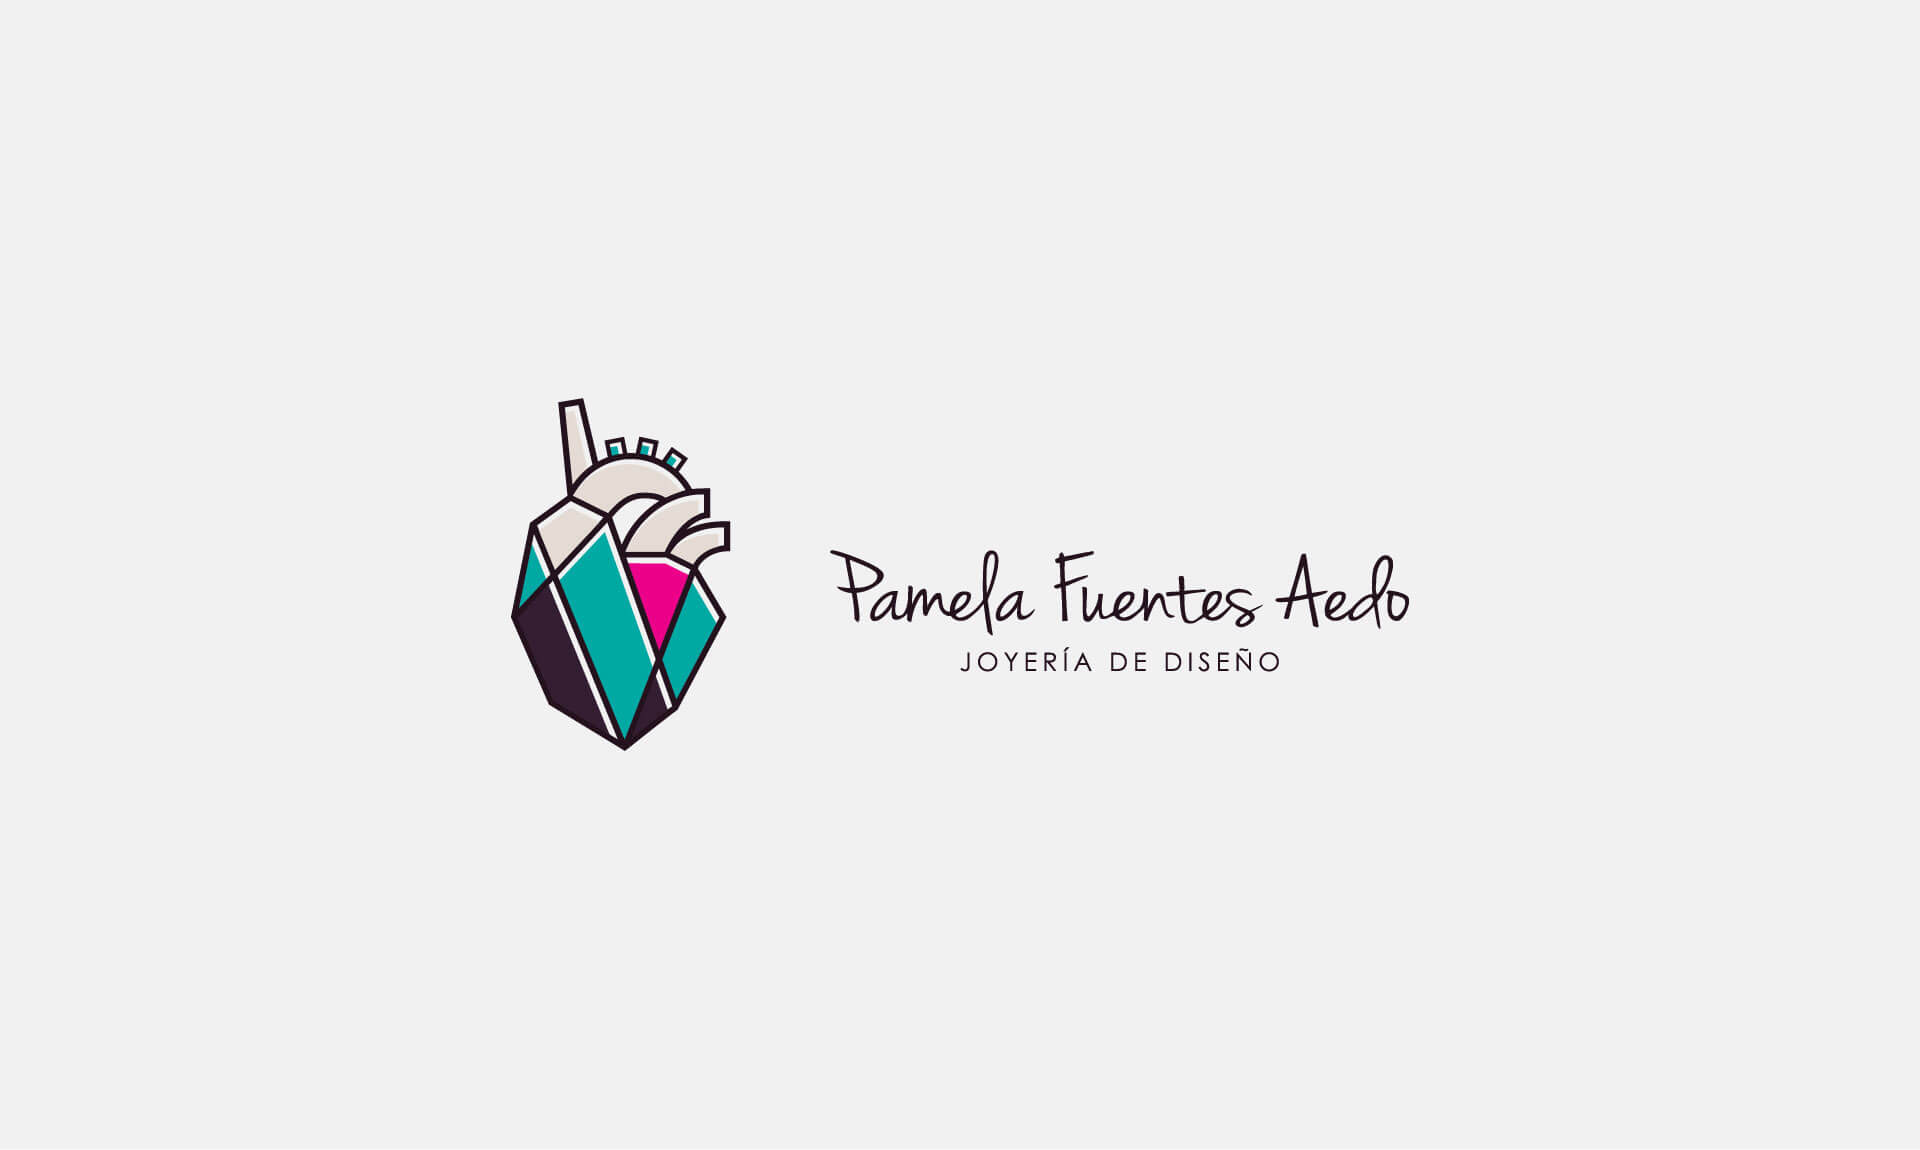 Pamela Fuentes Aedo by markos-esther